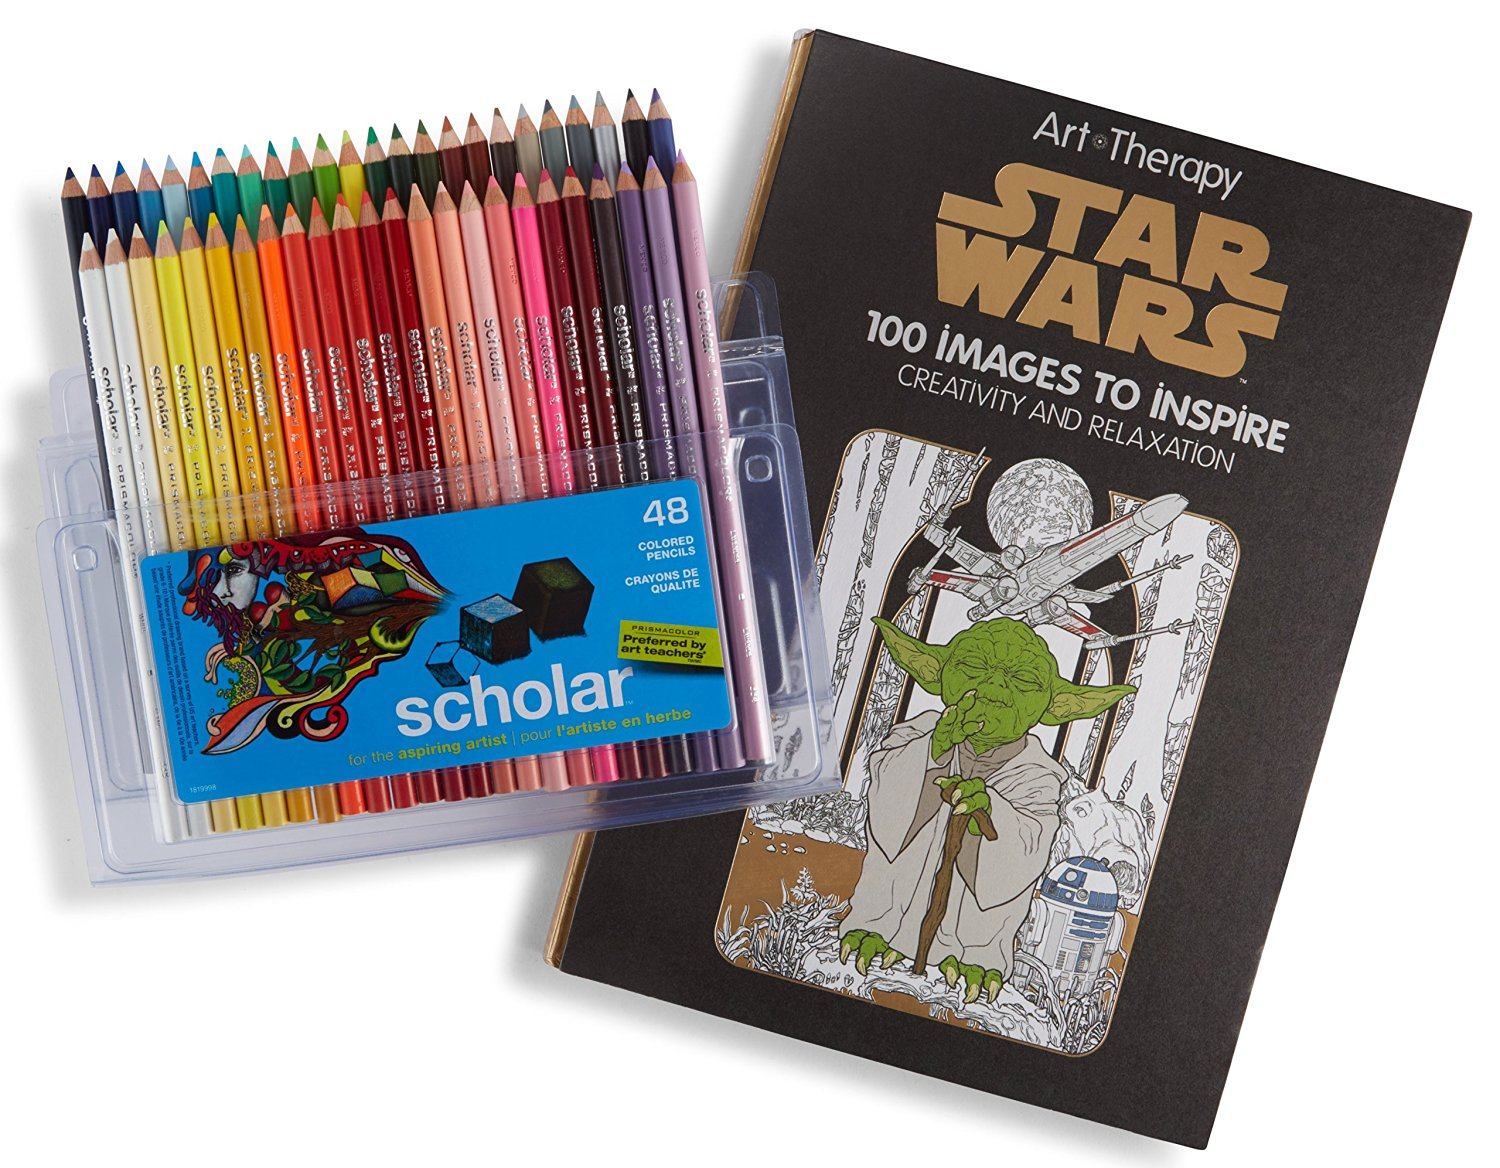 Prismacolor Scholar Colored Pencils, 48 Pack and Adult Coloring Book (Art of Coloring: Star Wars)